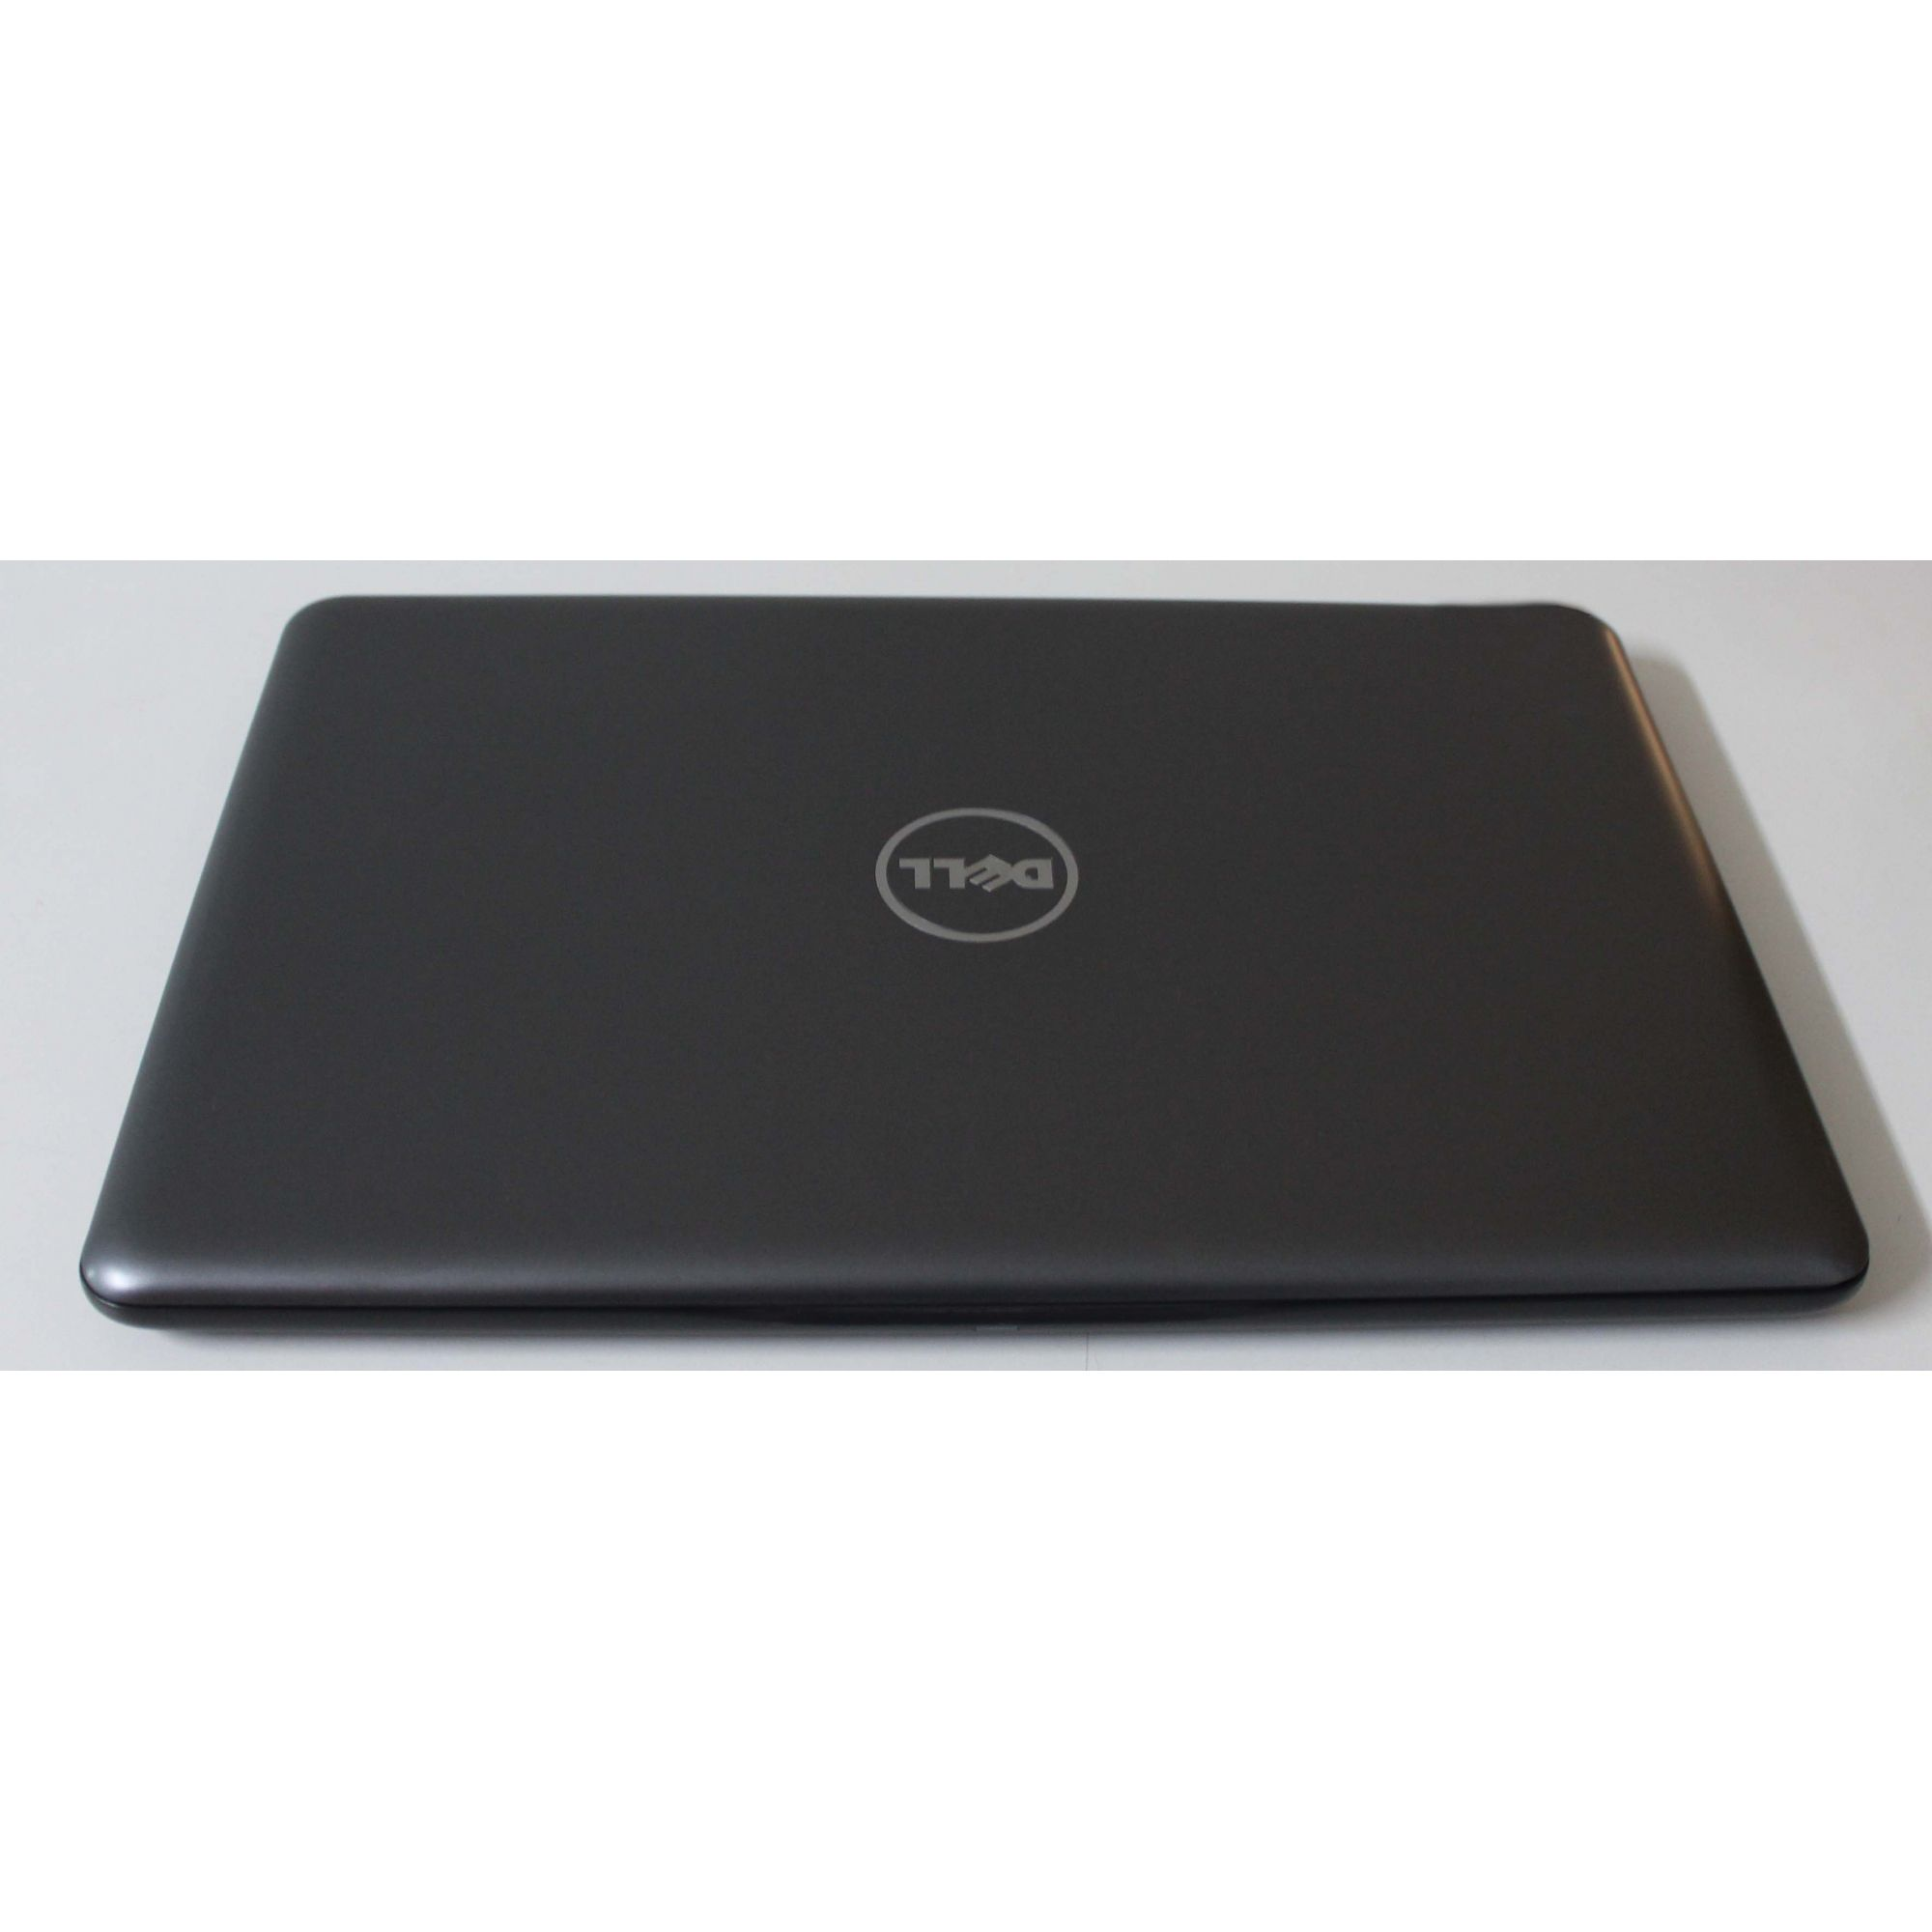 Notebook Dell Inspiron 5567 15.6'' Intel Core i7 2.7GHz 8GB SSD-256GB + Alphanumérico (4GB Dedicada)